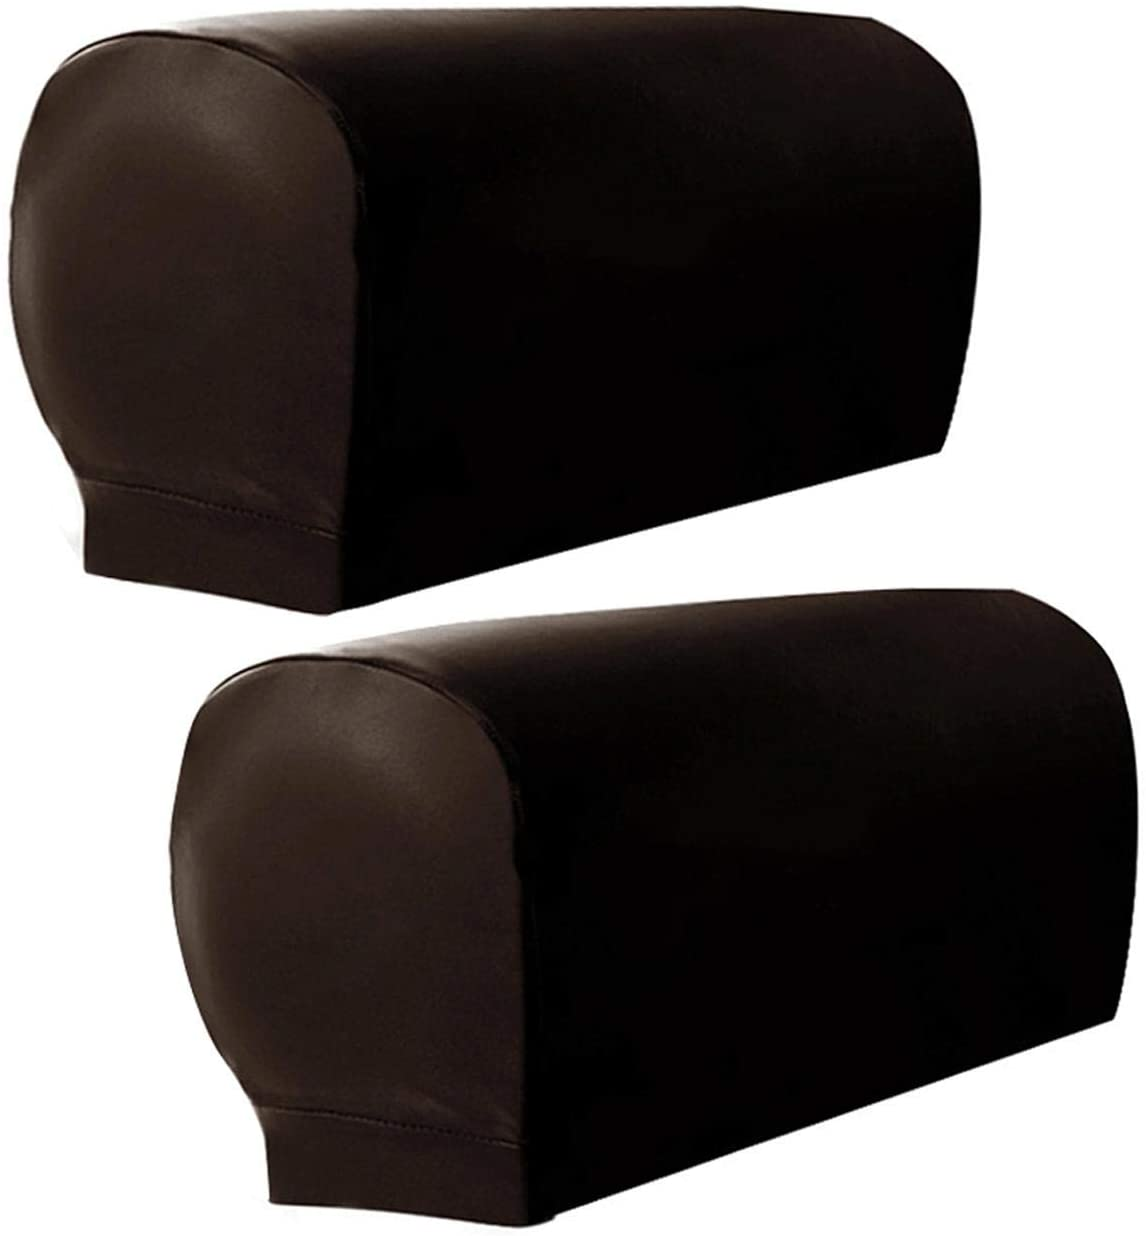 CALIDAKA Elastic PU Leather Sofa Covers 2pc/Set Waterproof Sofa Armrest Covers Anti-Slip Furniture Protector Washable Armchair Slipcovers for Couch Chair Arm(Brown- No Button)